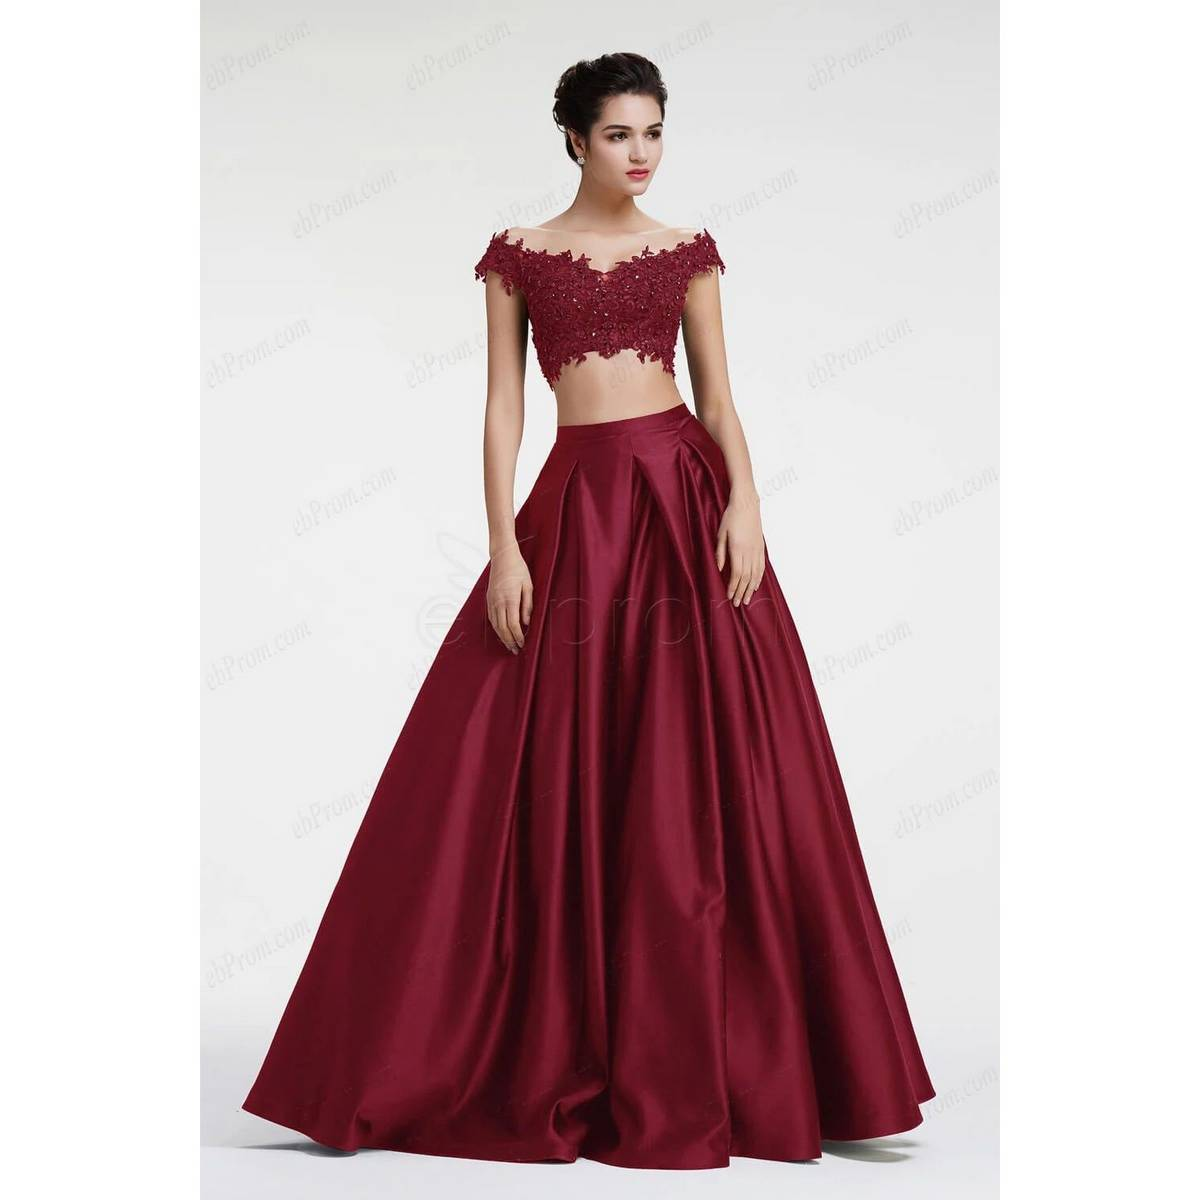 Korea Satin Silk Box Pleated Long Skirt, Skirts for women ladies with inner cancan stiched.